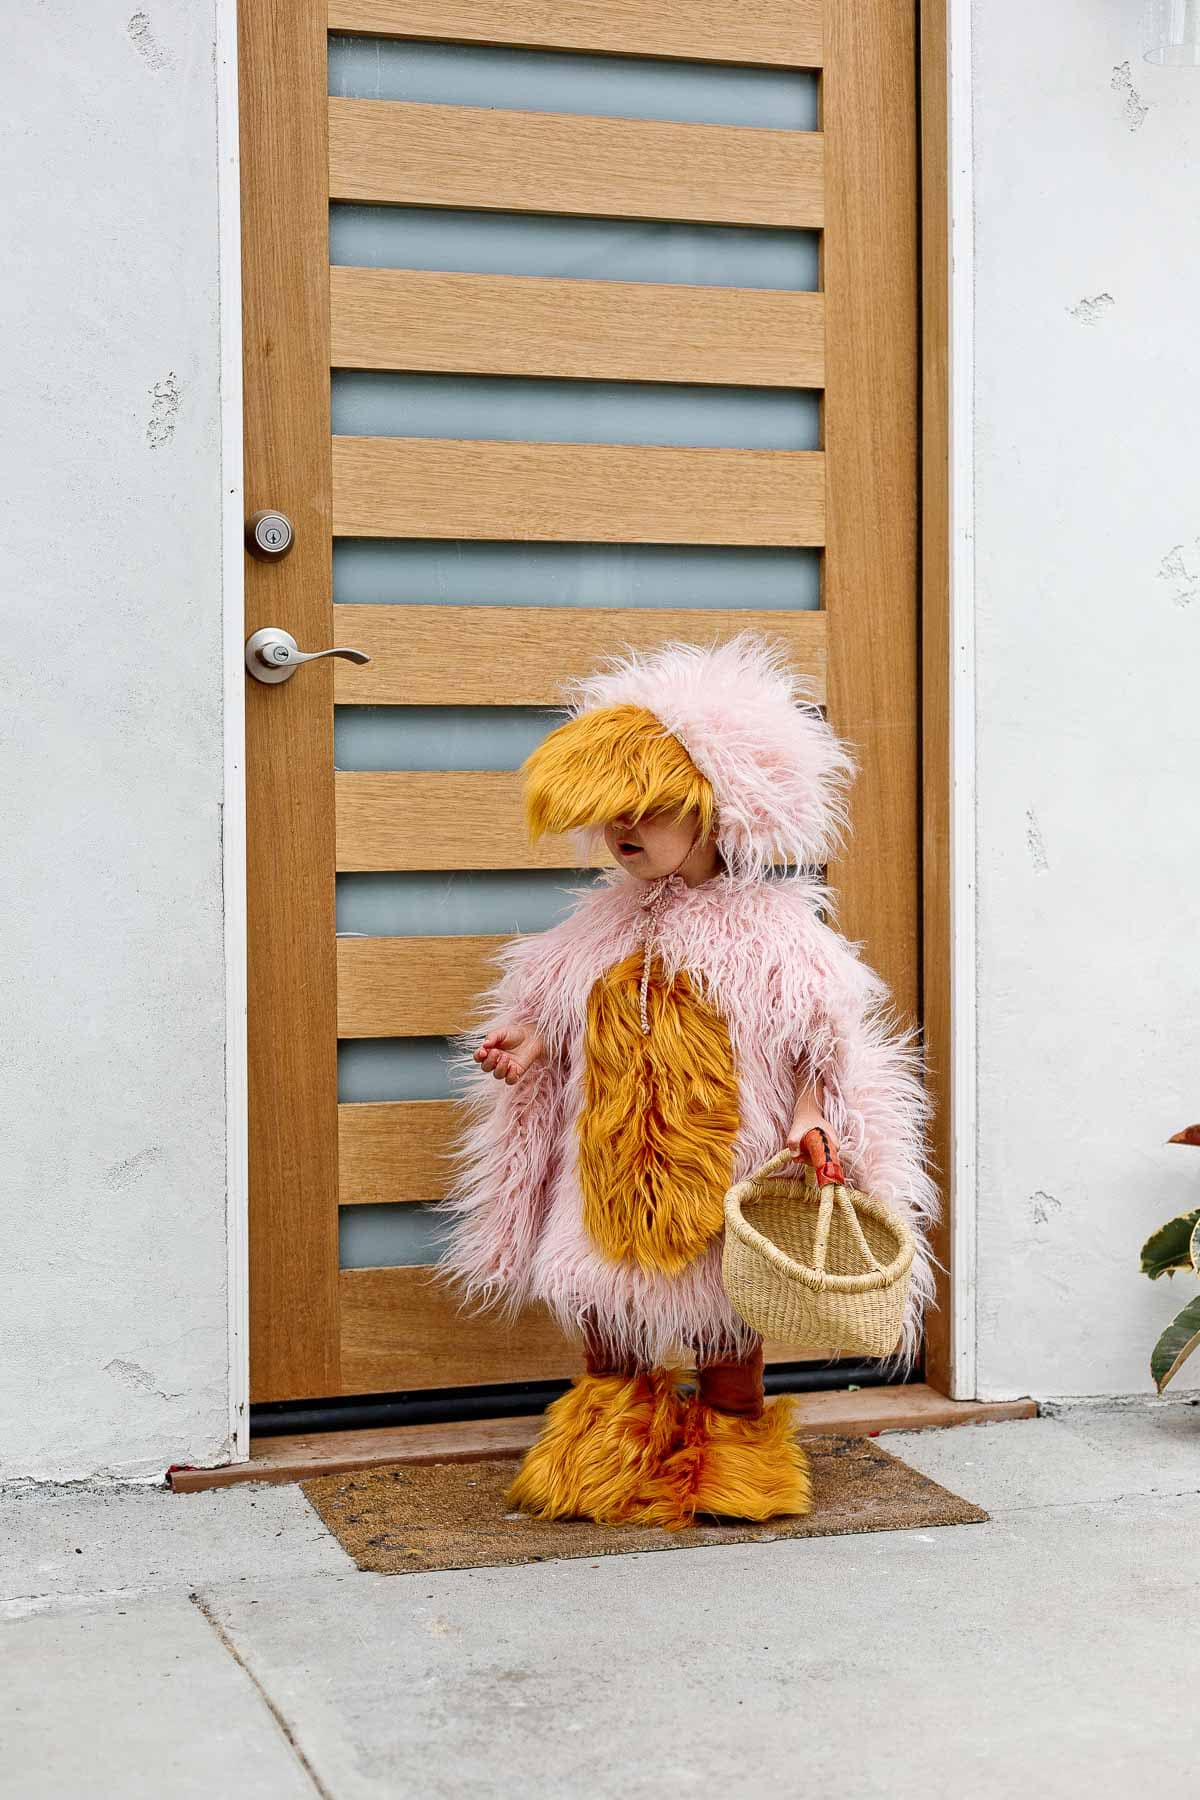 Child wearing a DIY Halloween costume of pink and yellow furry bird.